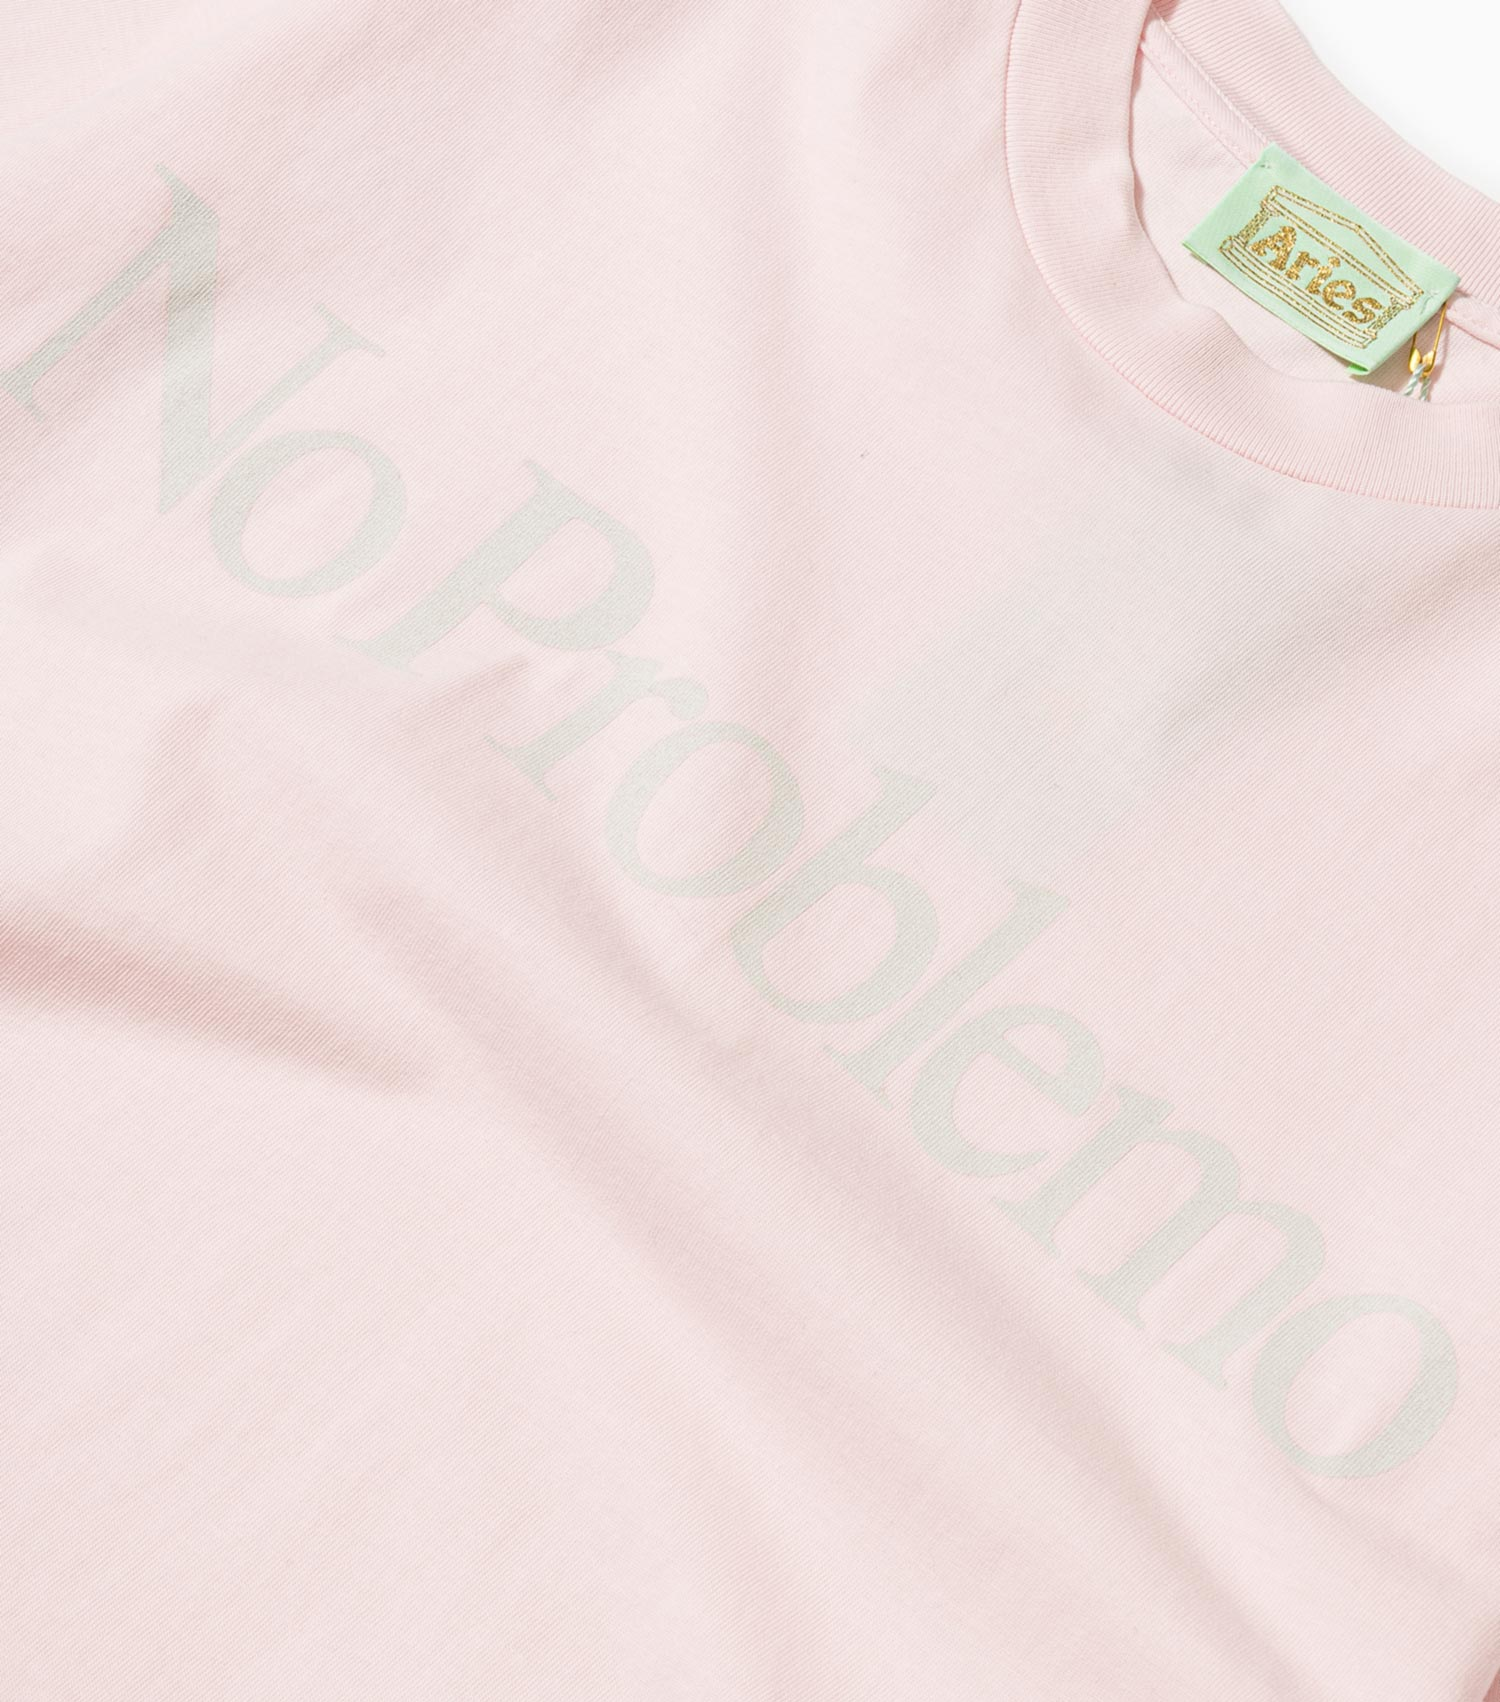 Aries No Problemo T-Shirt - Pink T-Shirt - CARTOCON